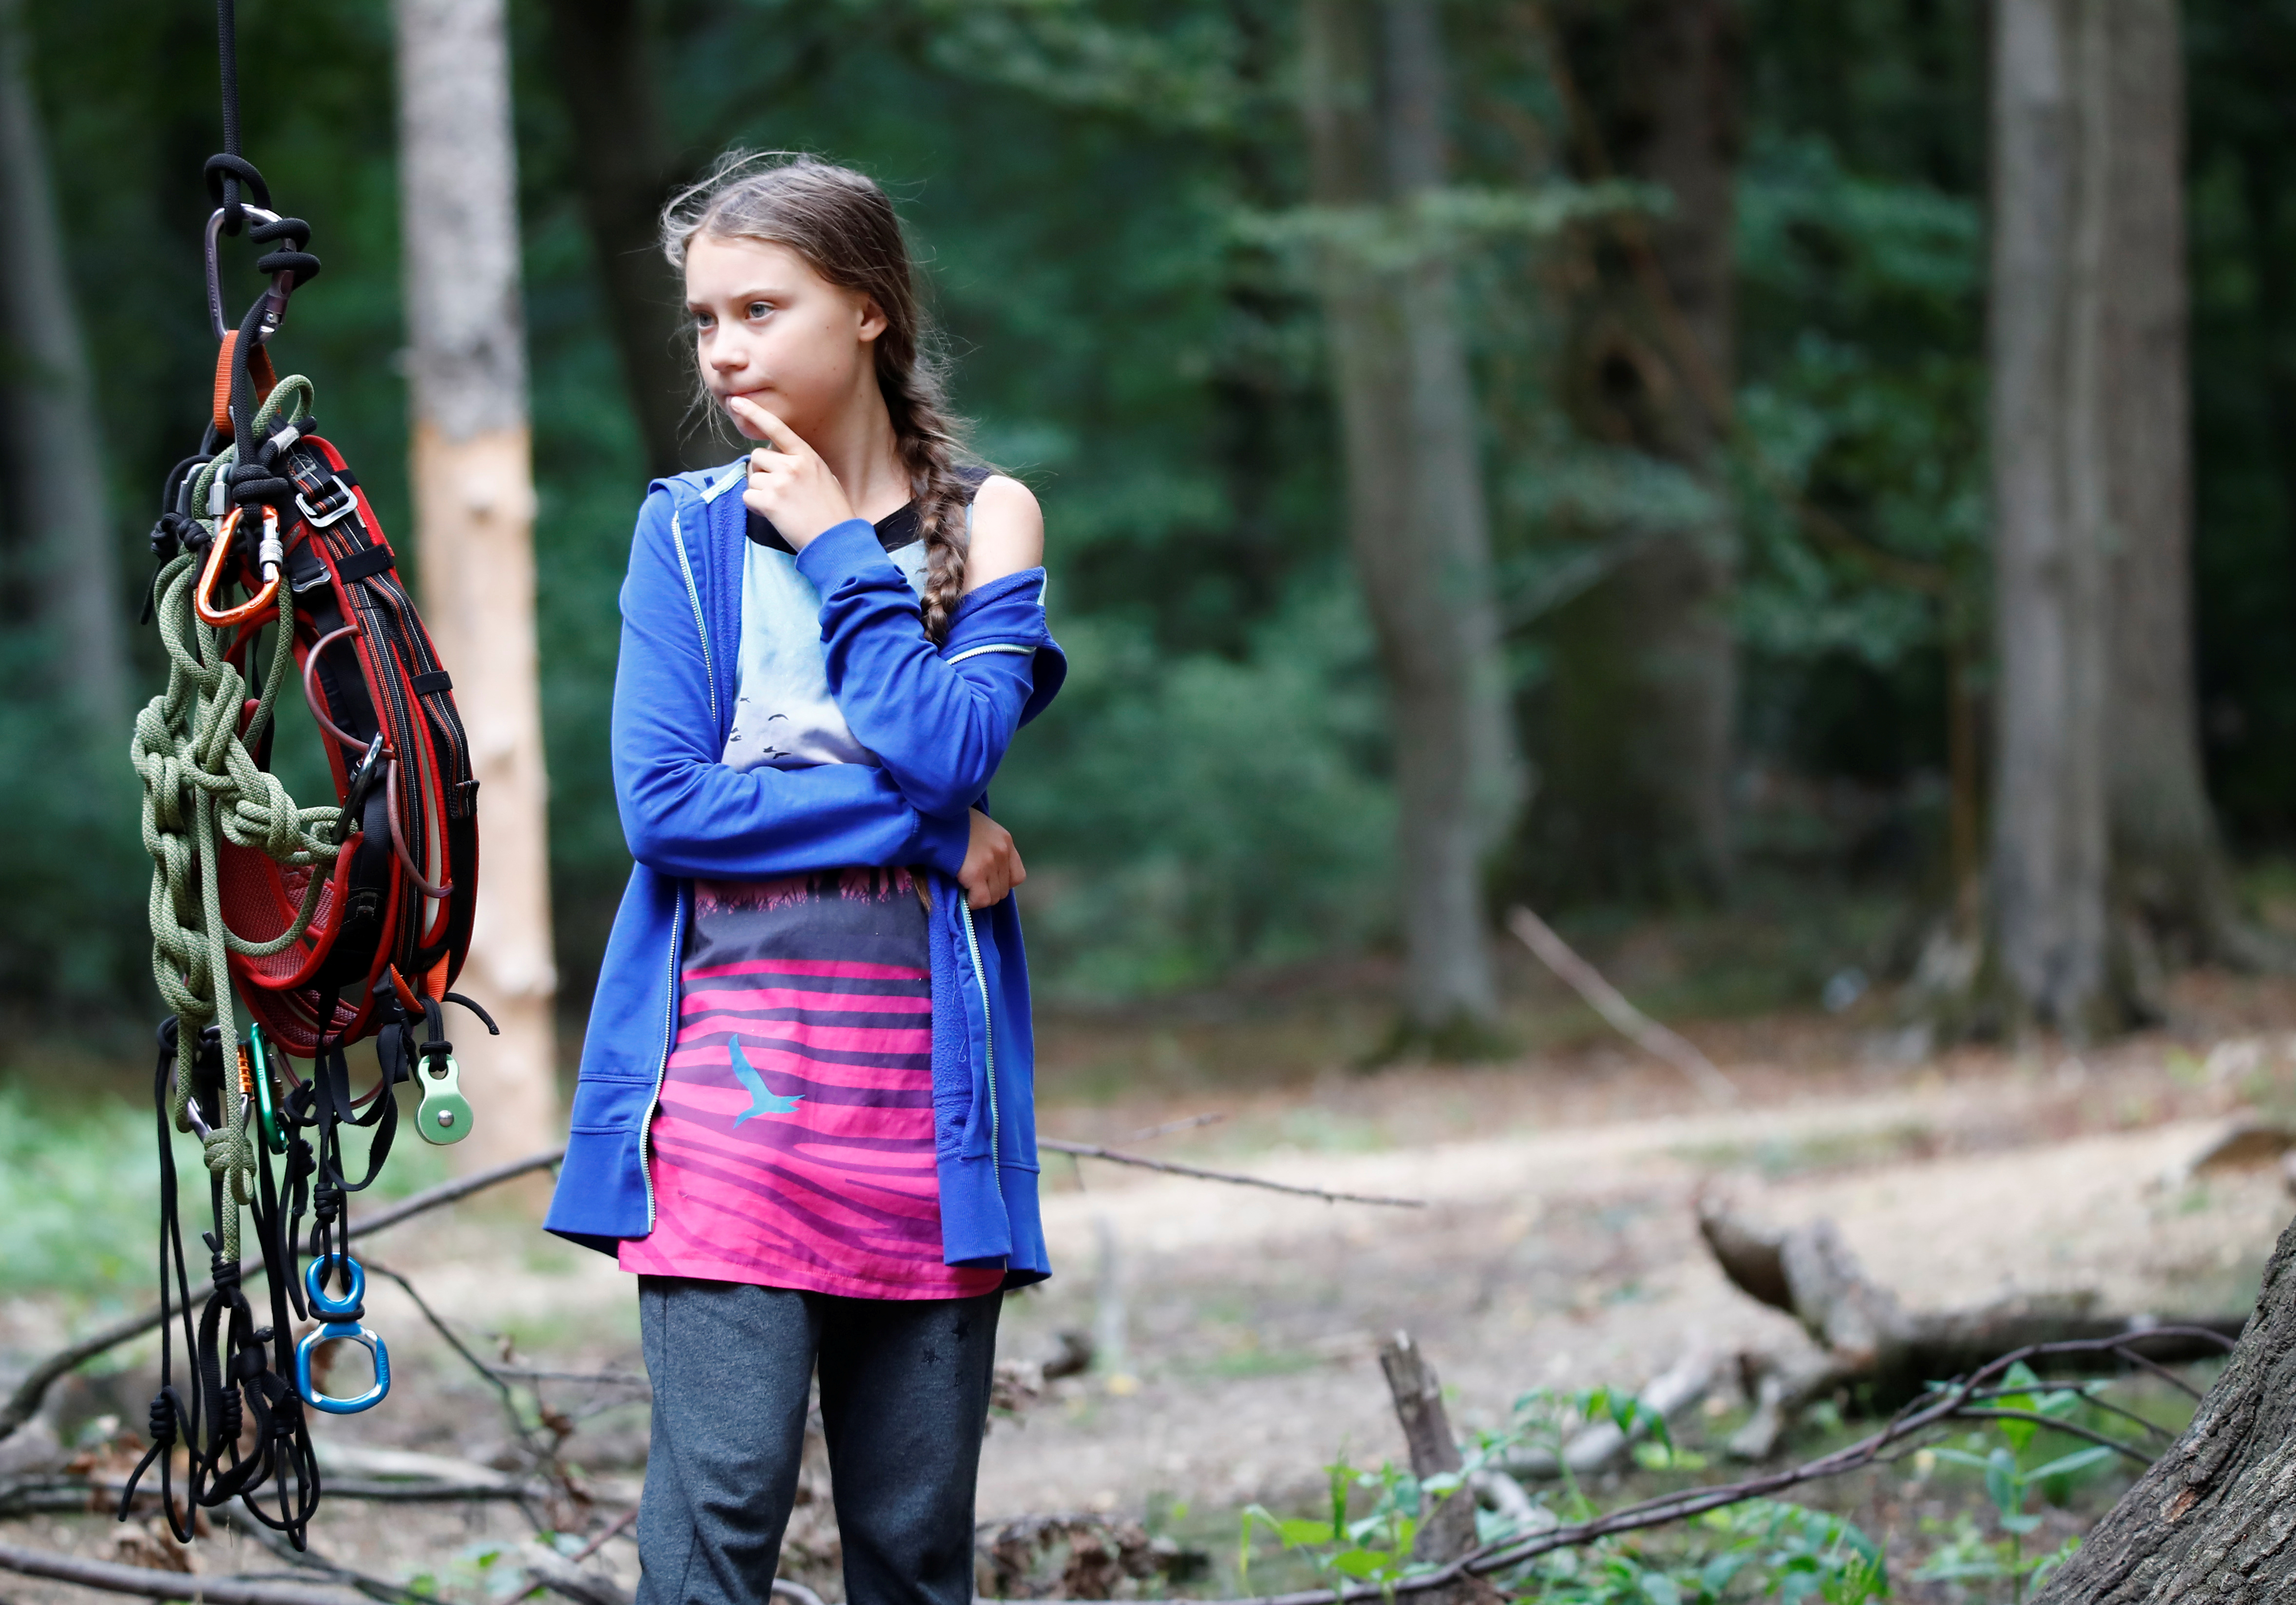 """Greta Thunberg, Swedish """"Fridays for Future"""" climate activist, stands next to climbing equipment that hangs from an illegal tree house in the Hambach Forest that is supposed to be chopped away for the nearby open-cast brown coal mine of German utility RWE, west of Cologne, Germany, August 10, 2019. REUTERS/Wolfgang Rattay"""